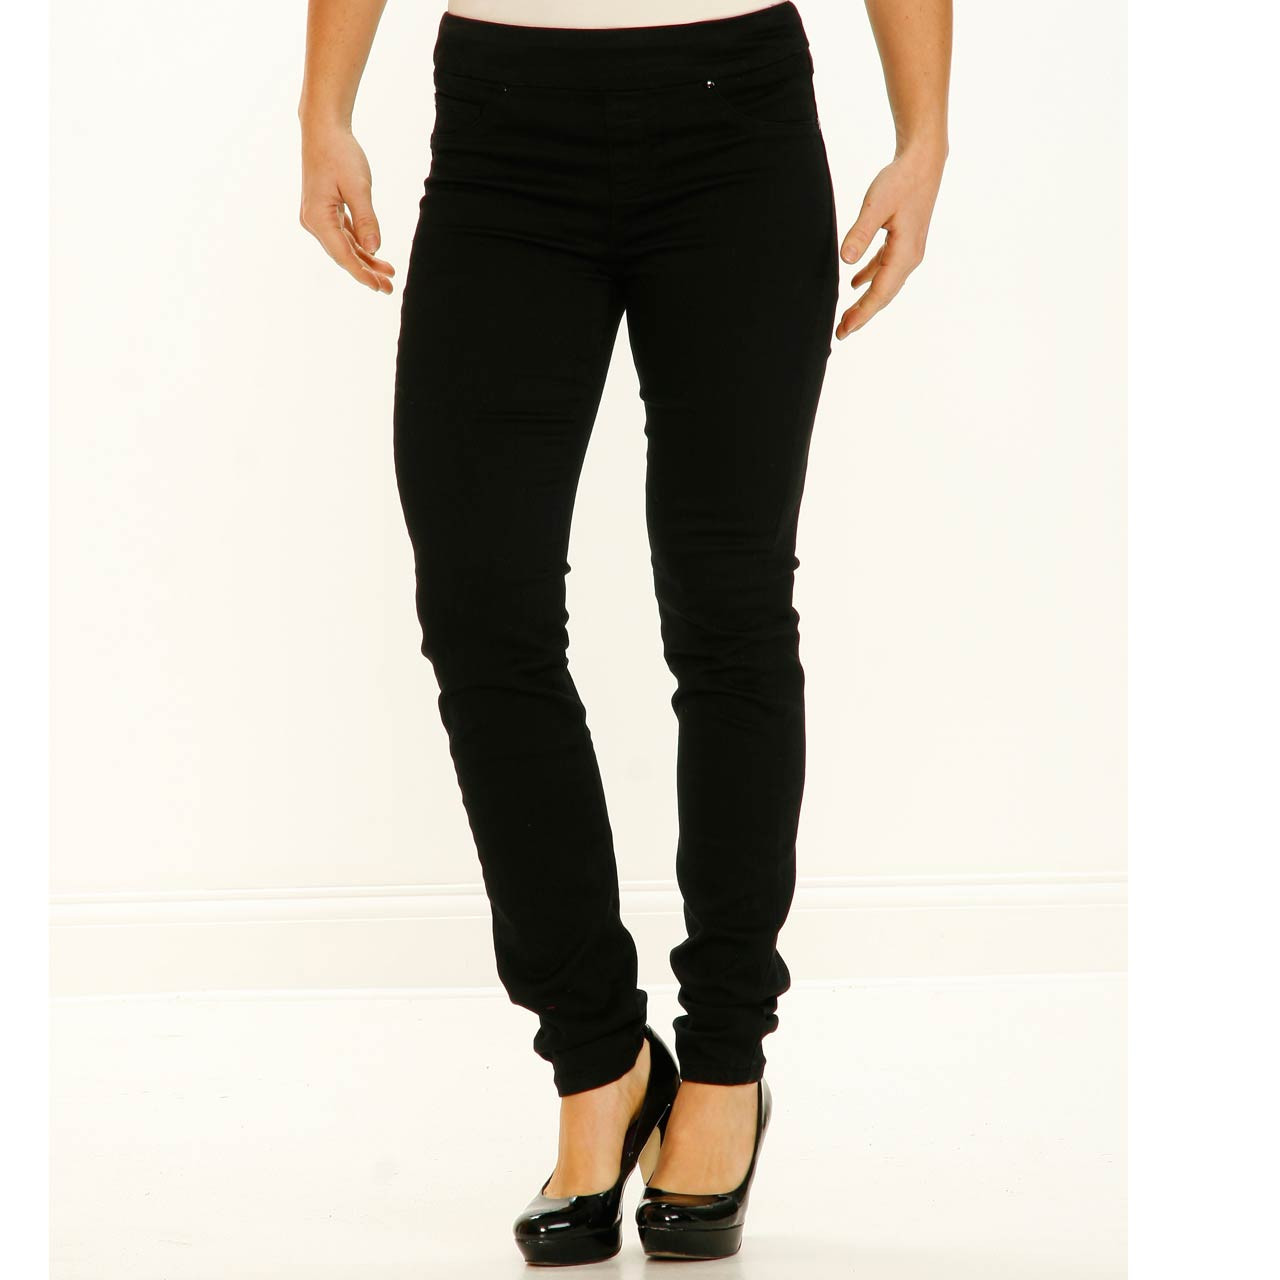 5a3a867fd599b Women's Jeans | Pull-On Jeans | Tribal Jeans